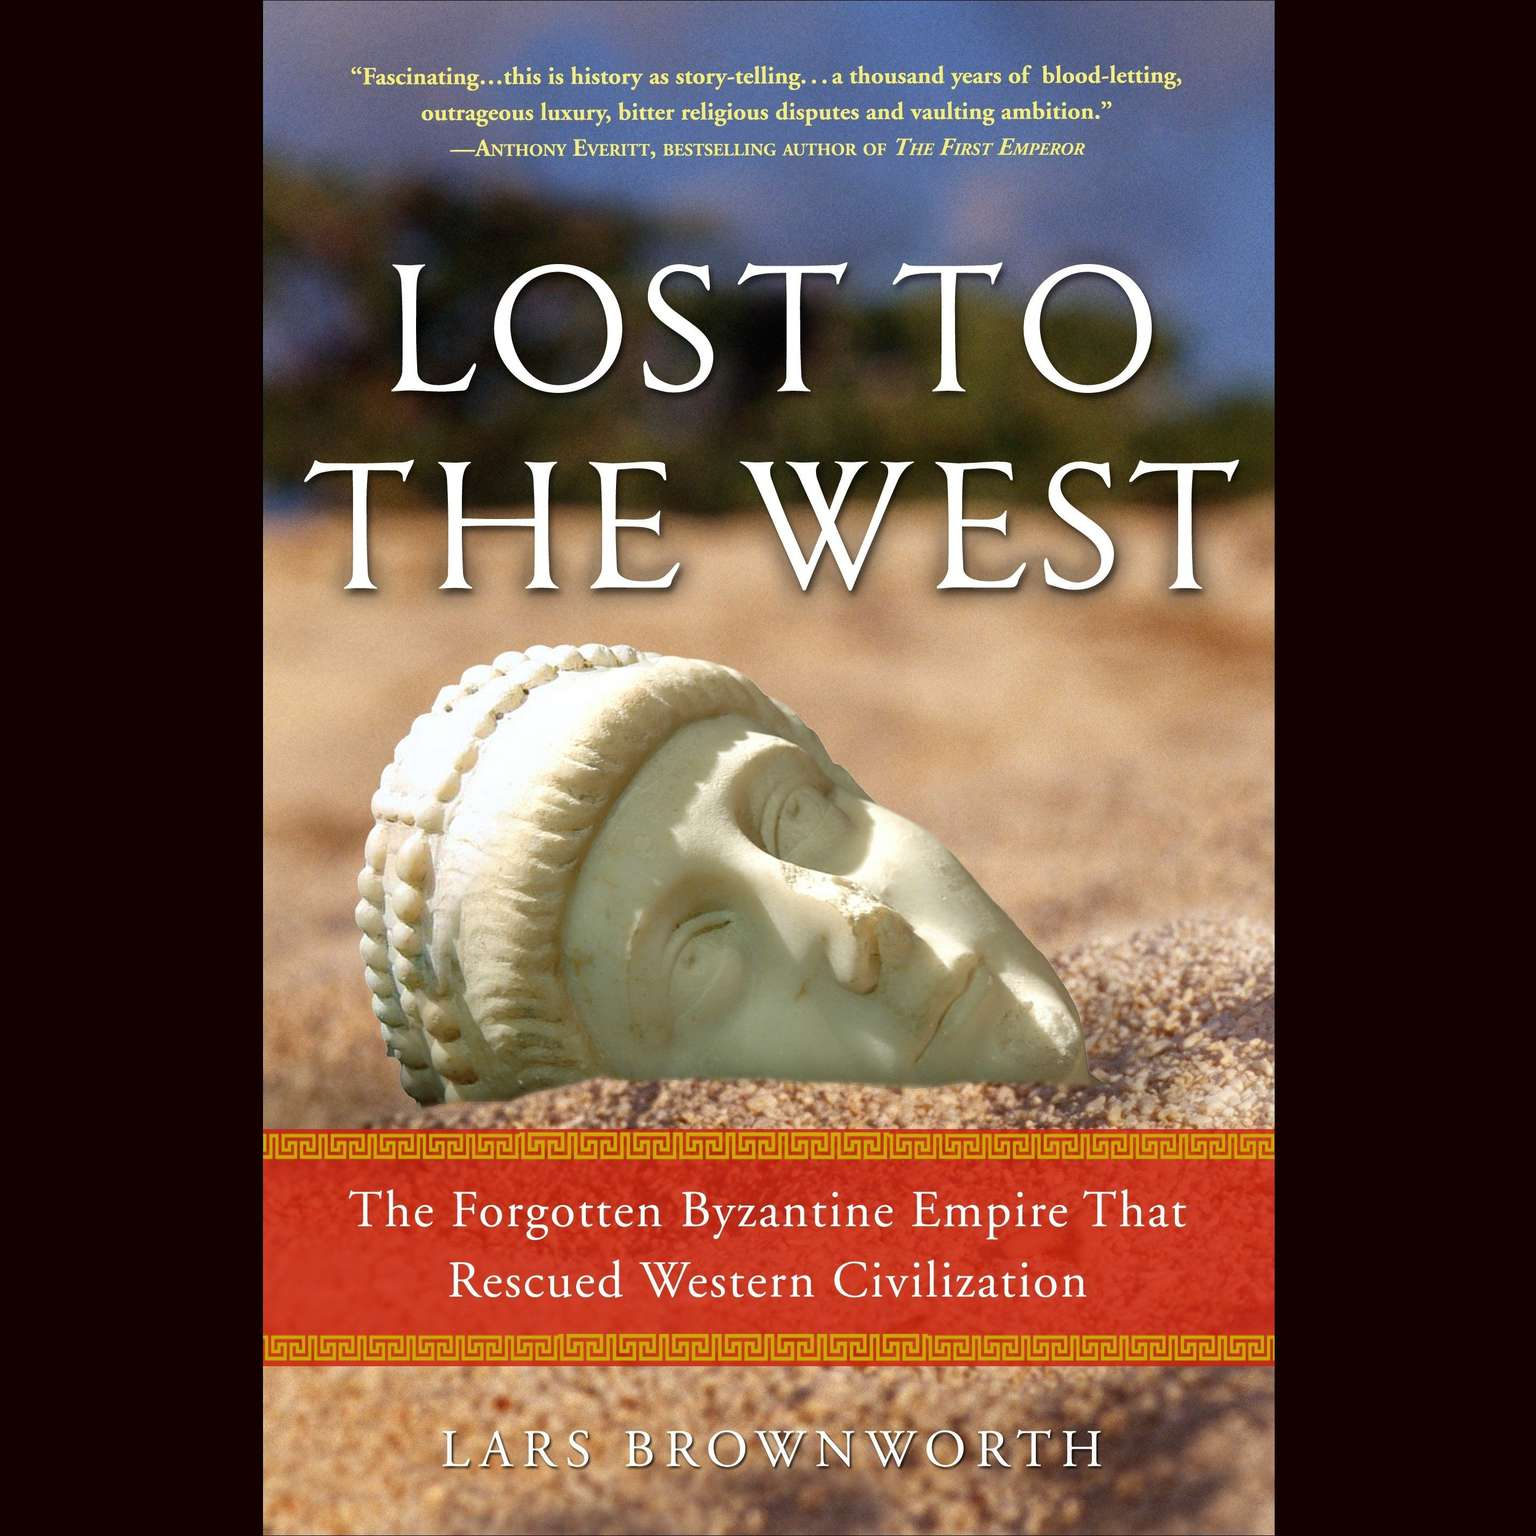 Printable Lost to the West: The Forgotten Byzantine Empire That Rescued Western Civilization Audiobook Cover Art